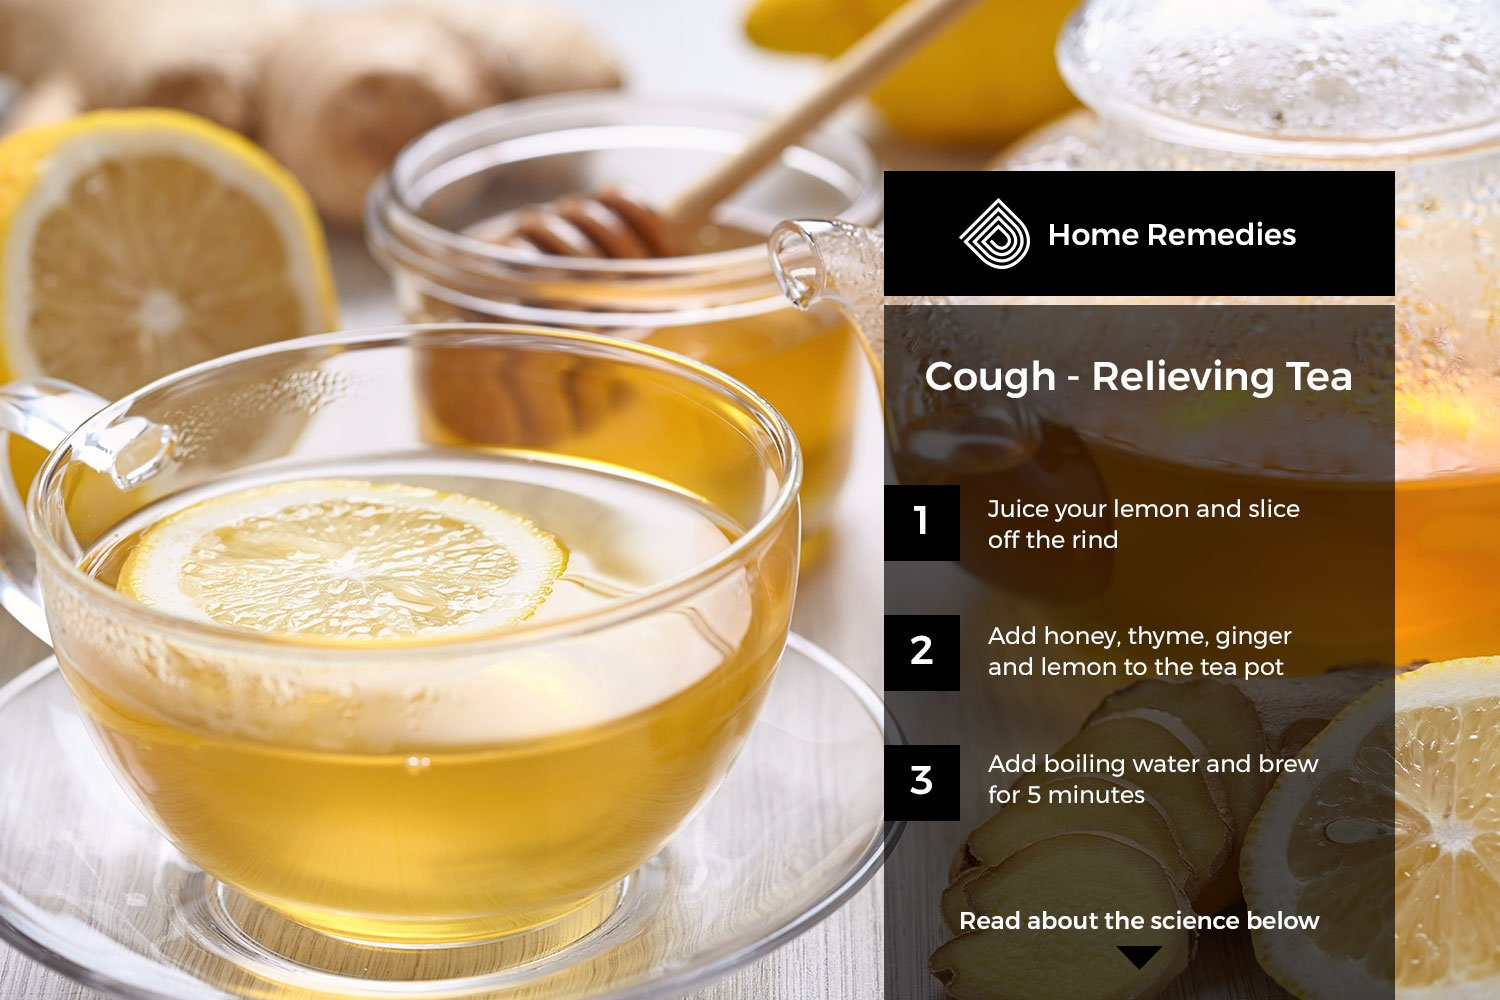 Homemade cough relieving tea